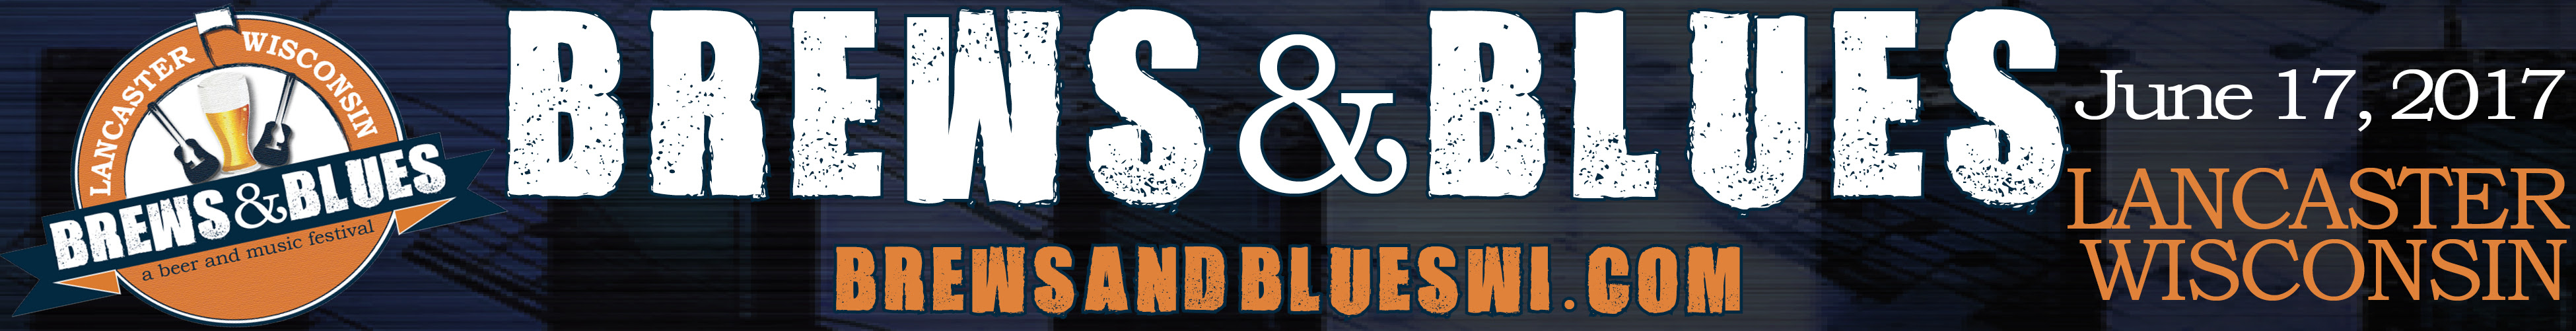 Brews & Blues 2017